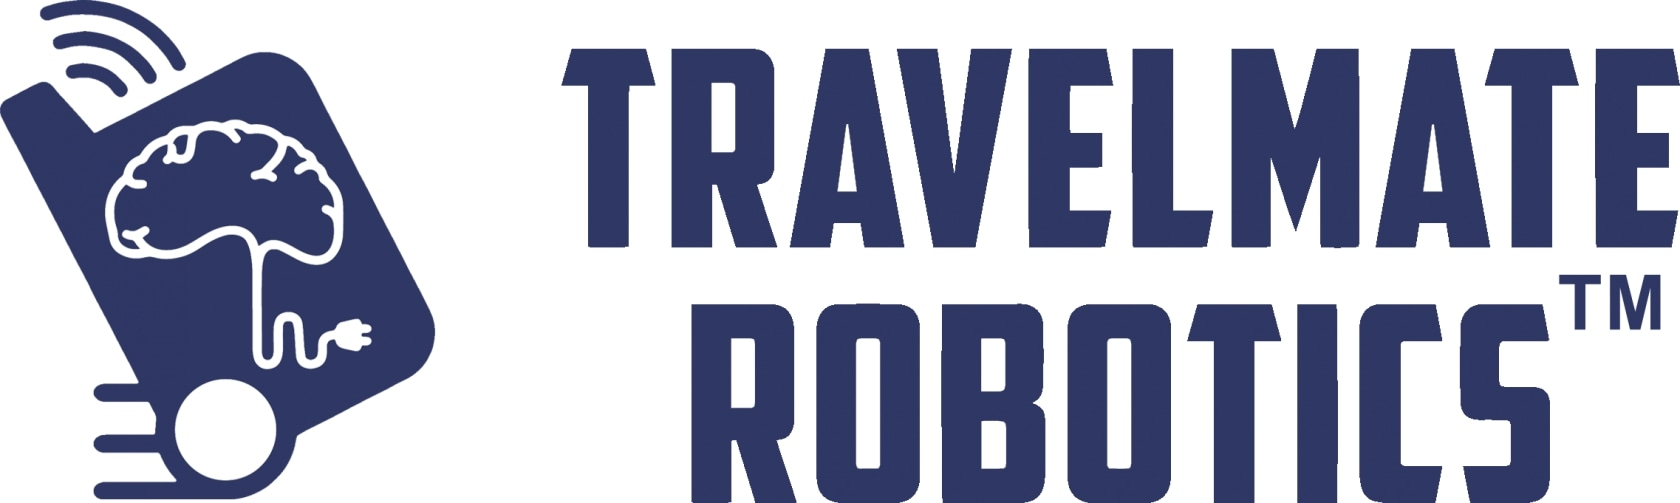 Travelmate Robotics promo codes